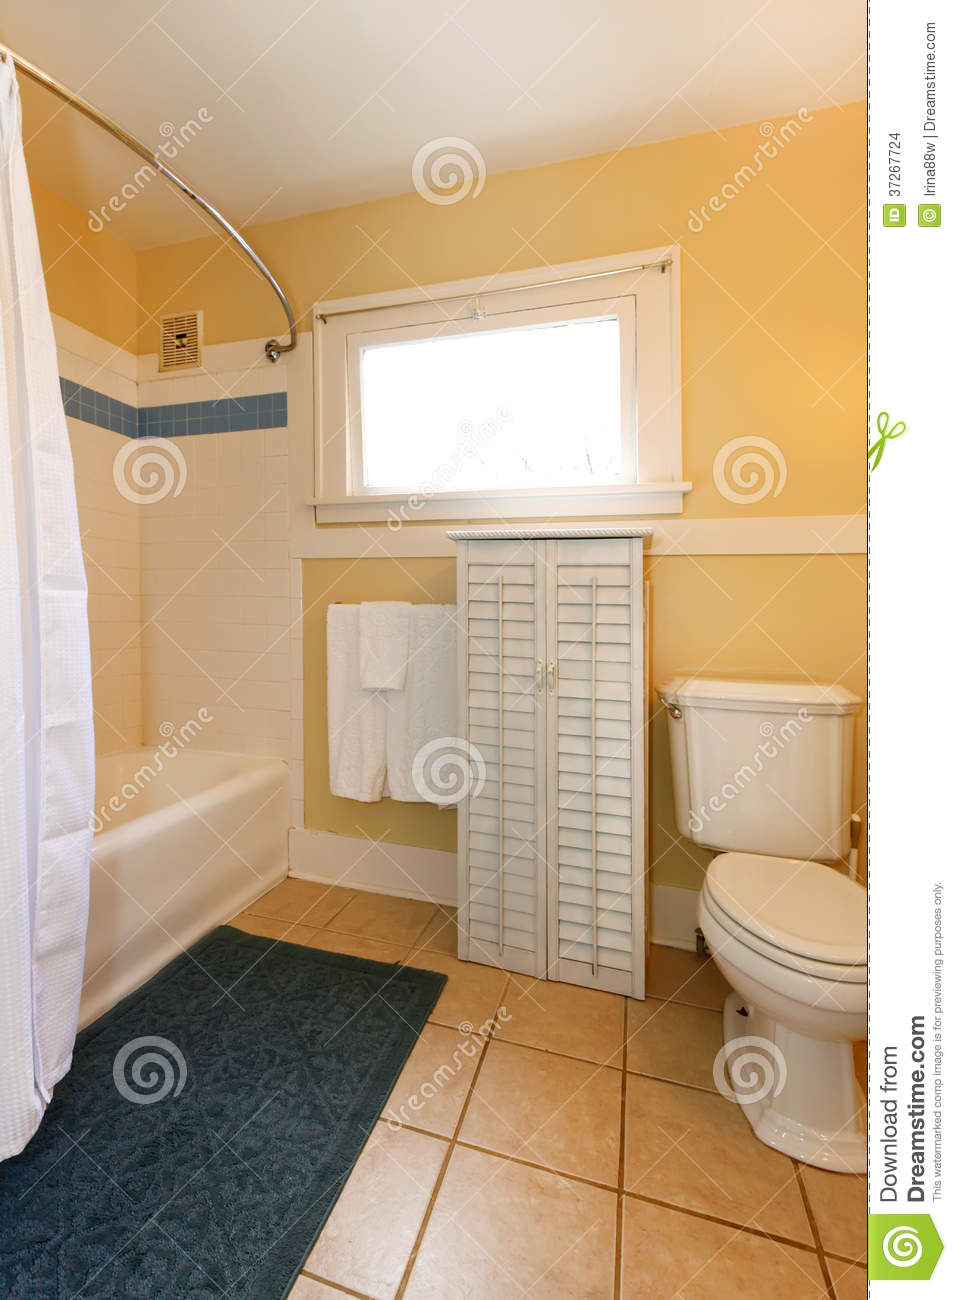 salle de bains confortable jaune et beige images stock image 37267724. Black Bedroom Furniture Sets. Home Design Ideas